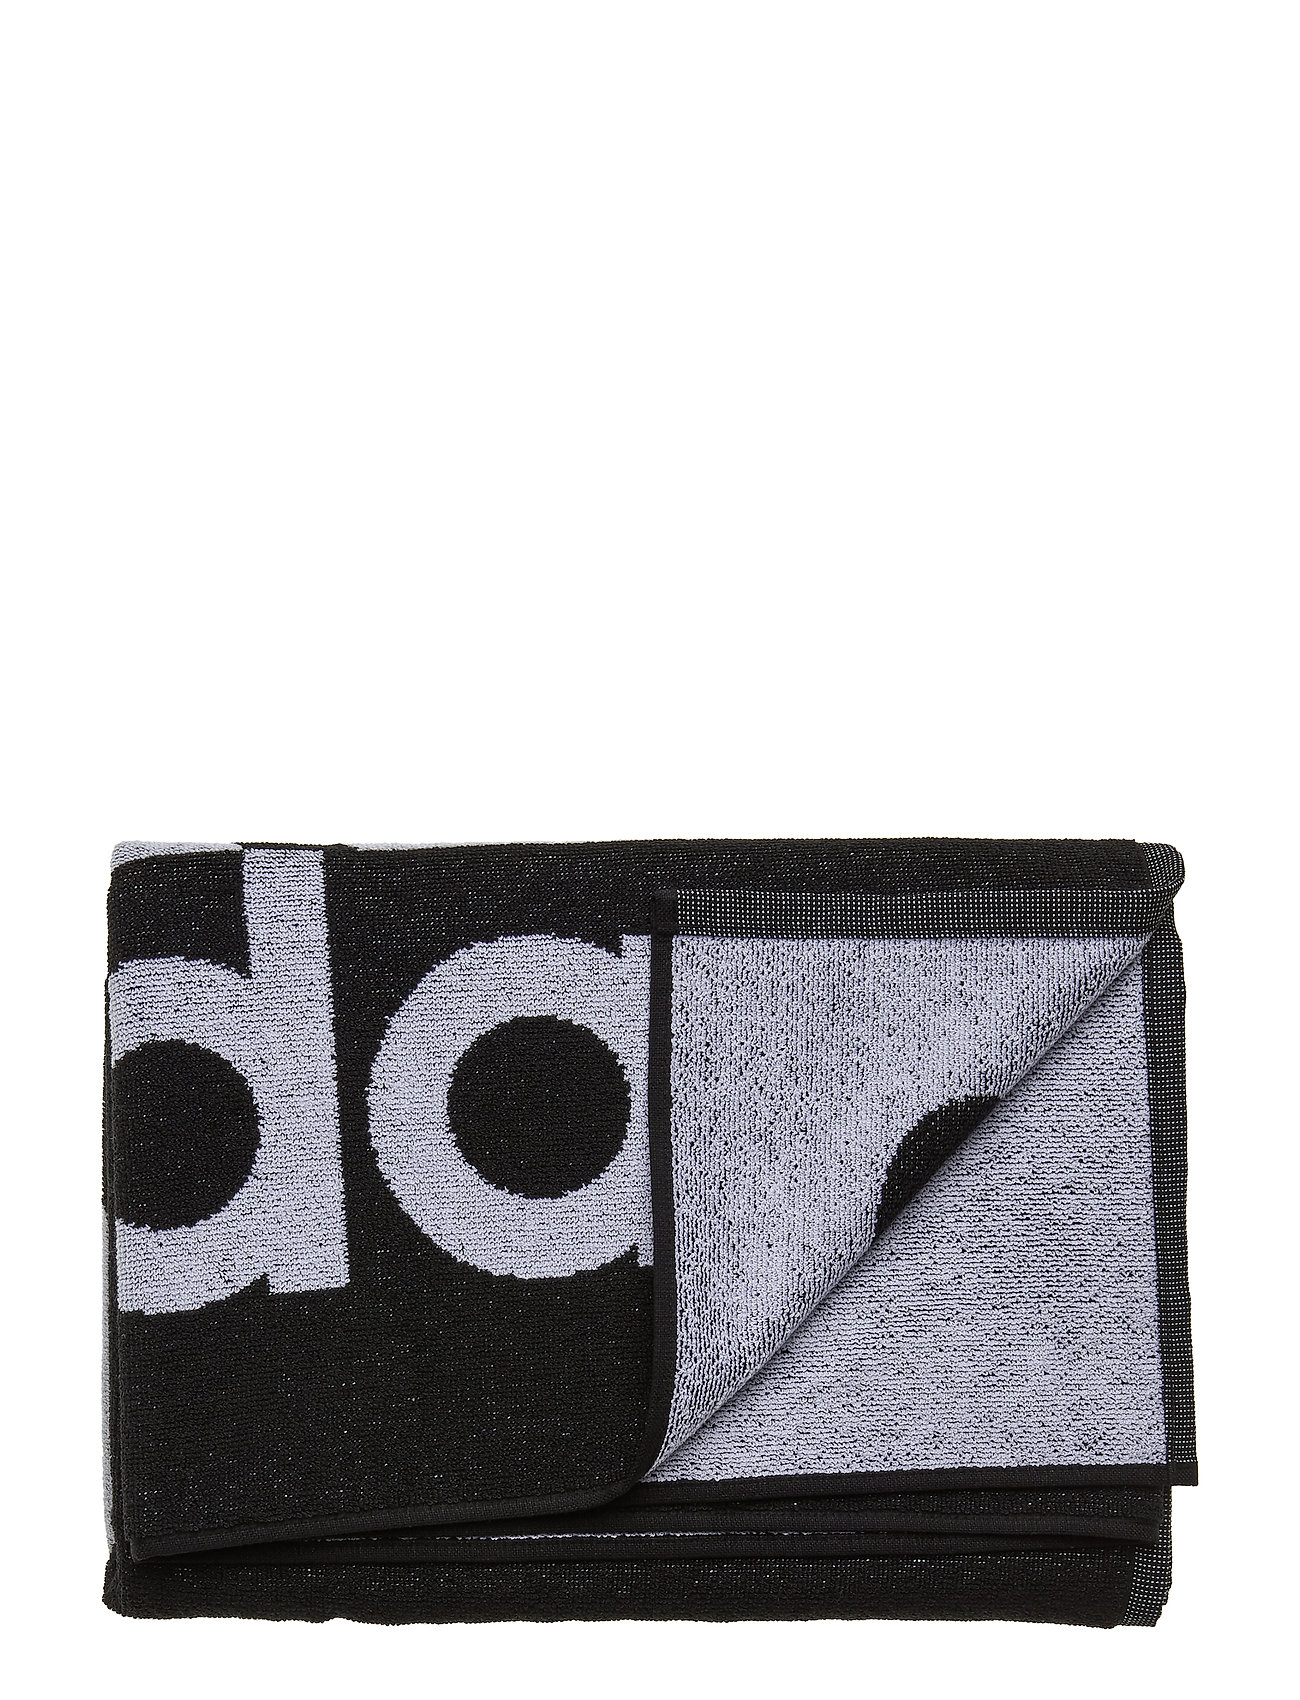 adidas Performance ADIDAS TOWEL L - BLACK/WHITE